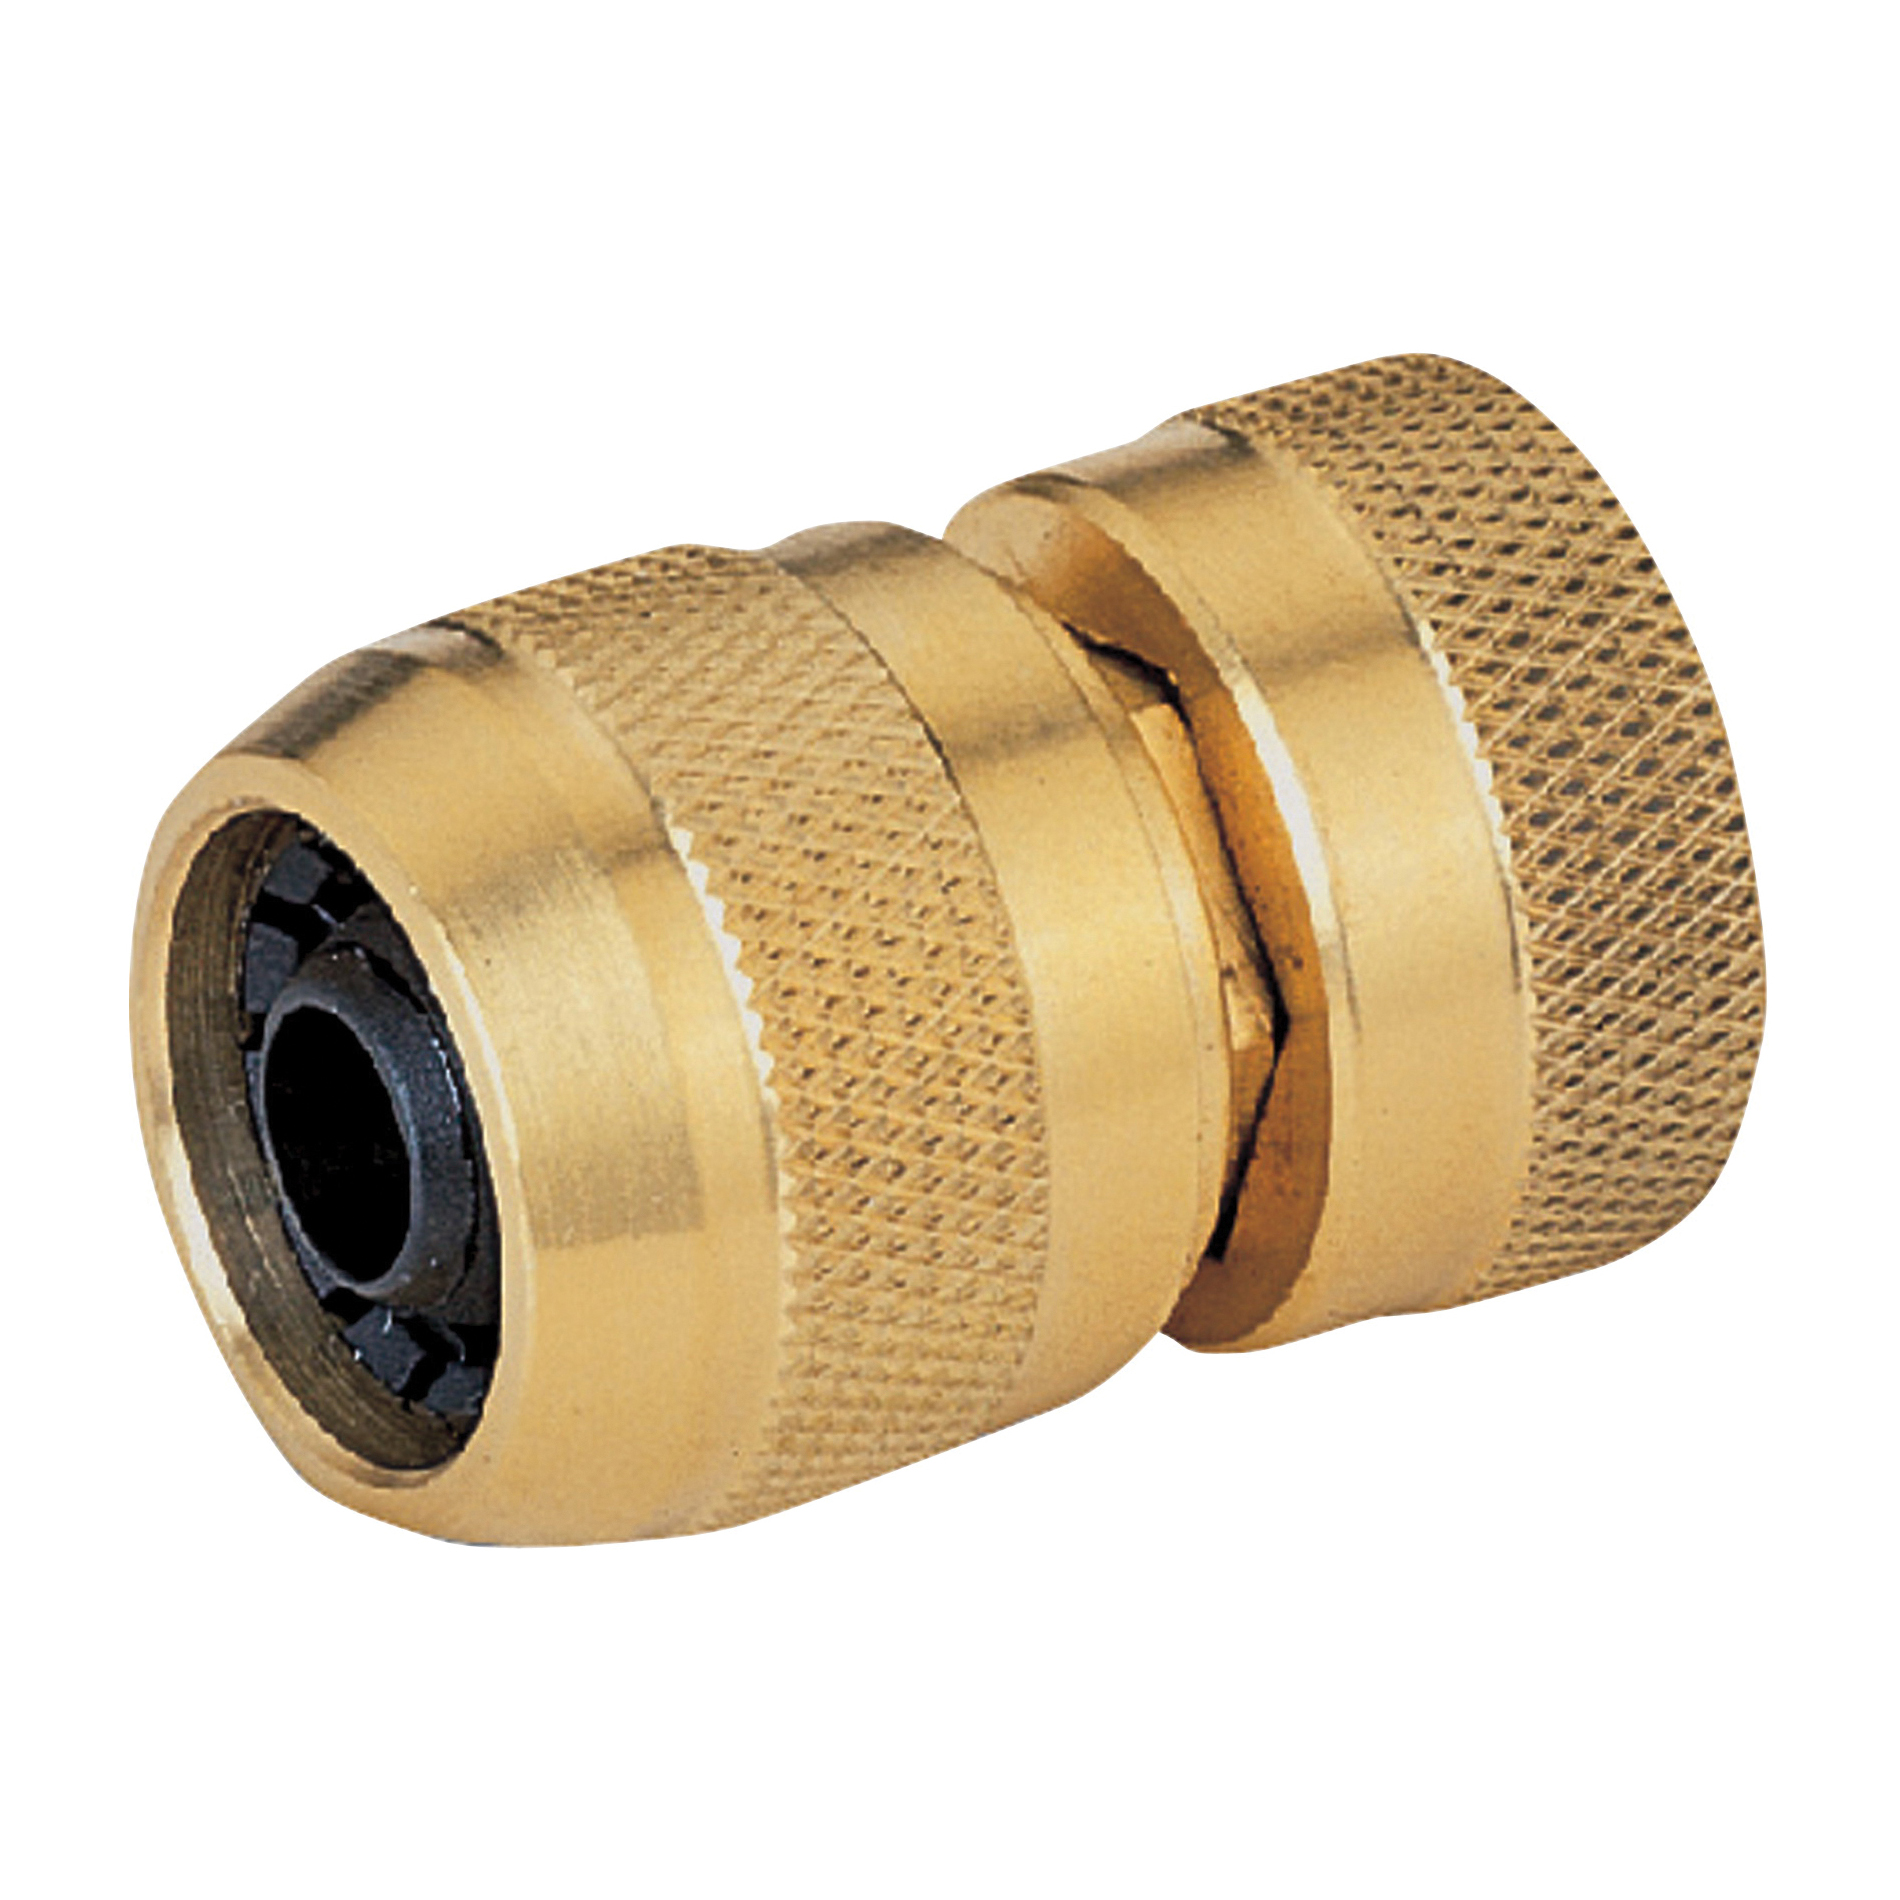 Picture of Landscapers Select GB8123-2(GB9211) Hose Coupling, 5/8 in, Female, Brass, Brass